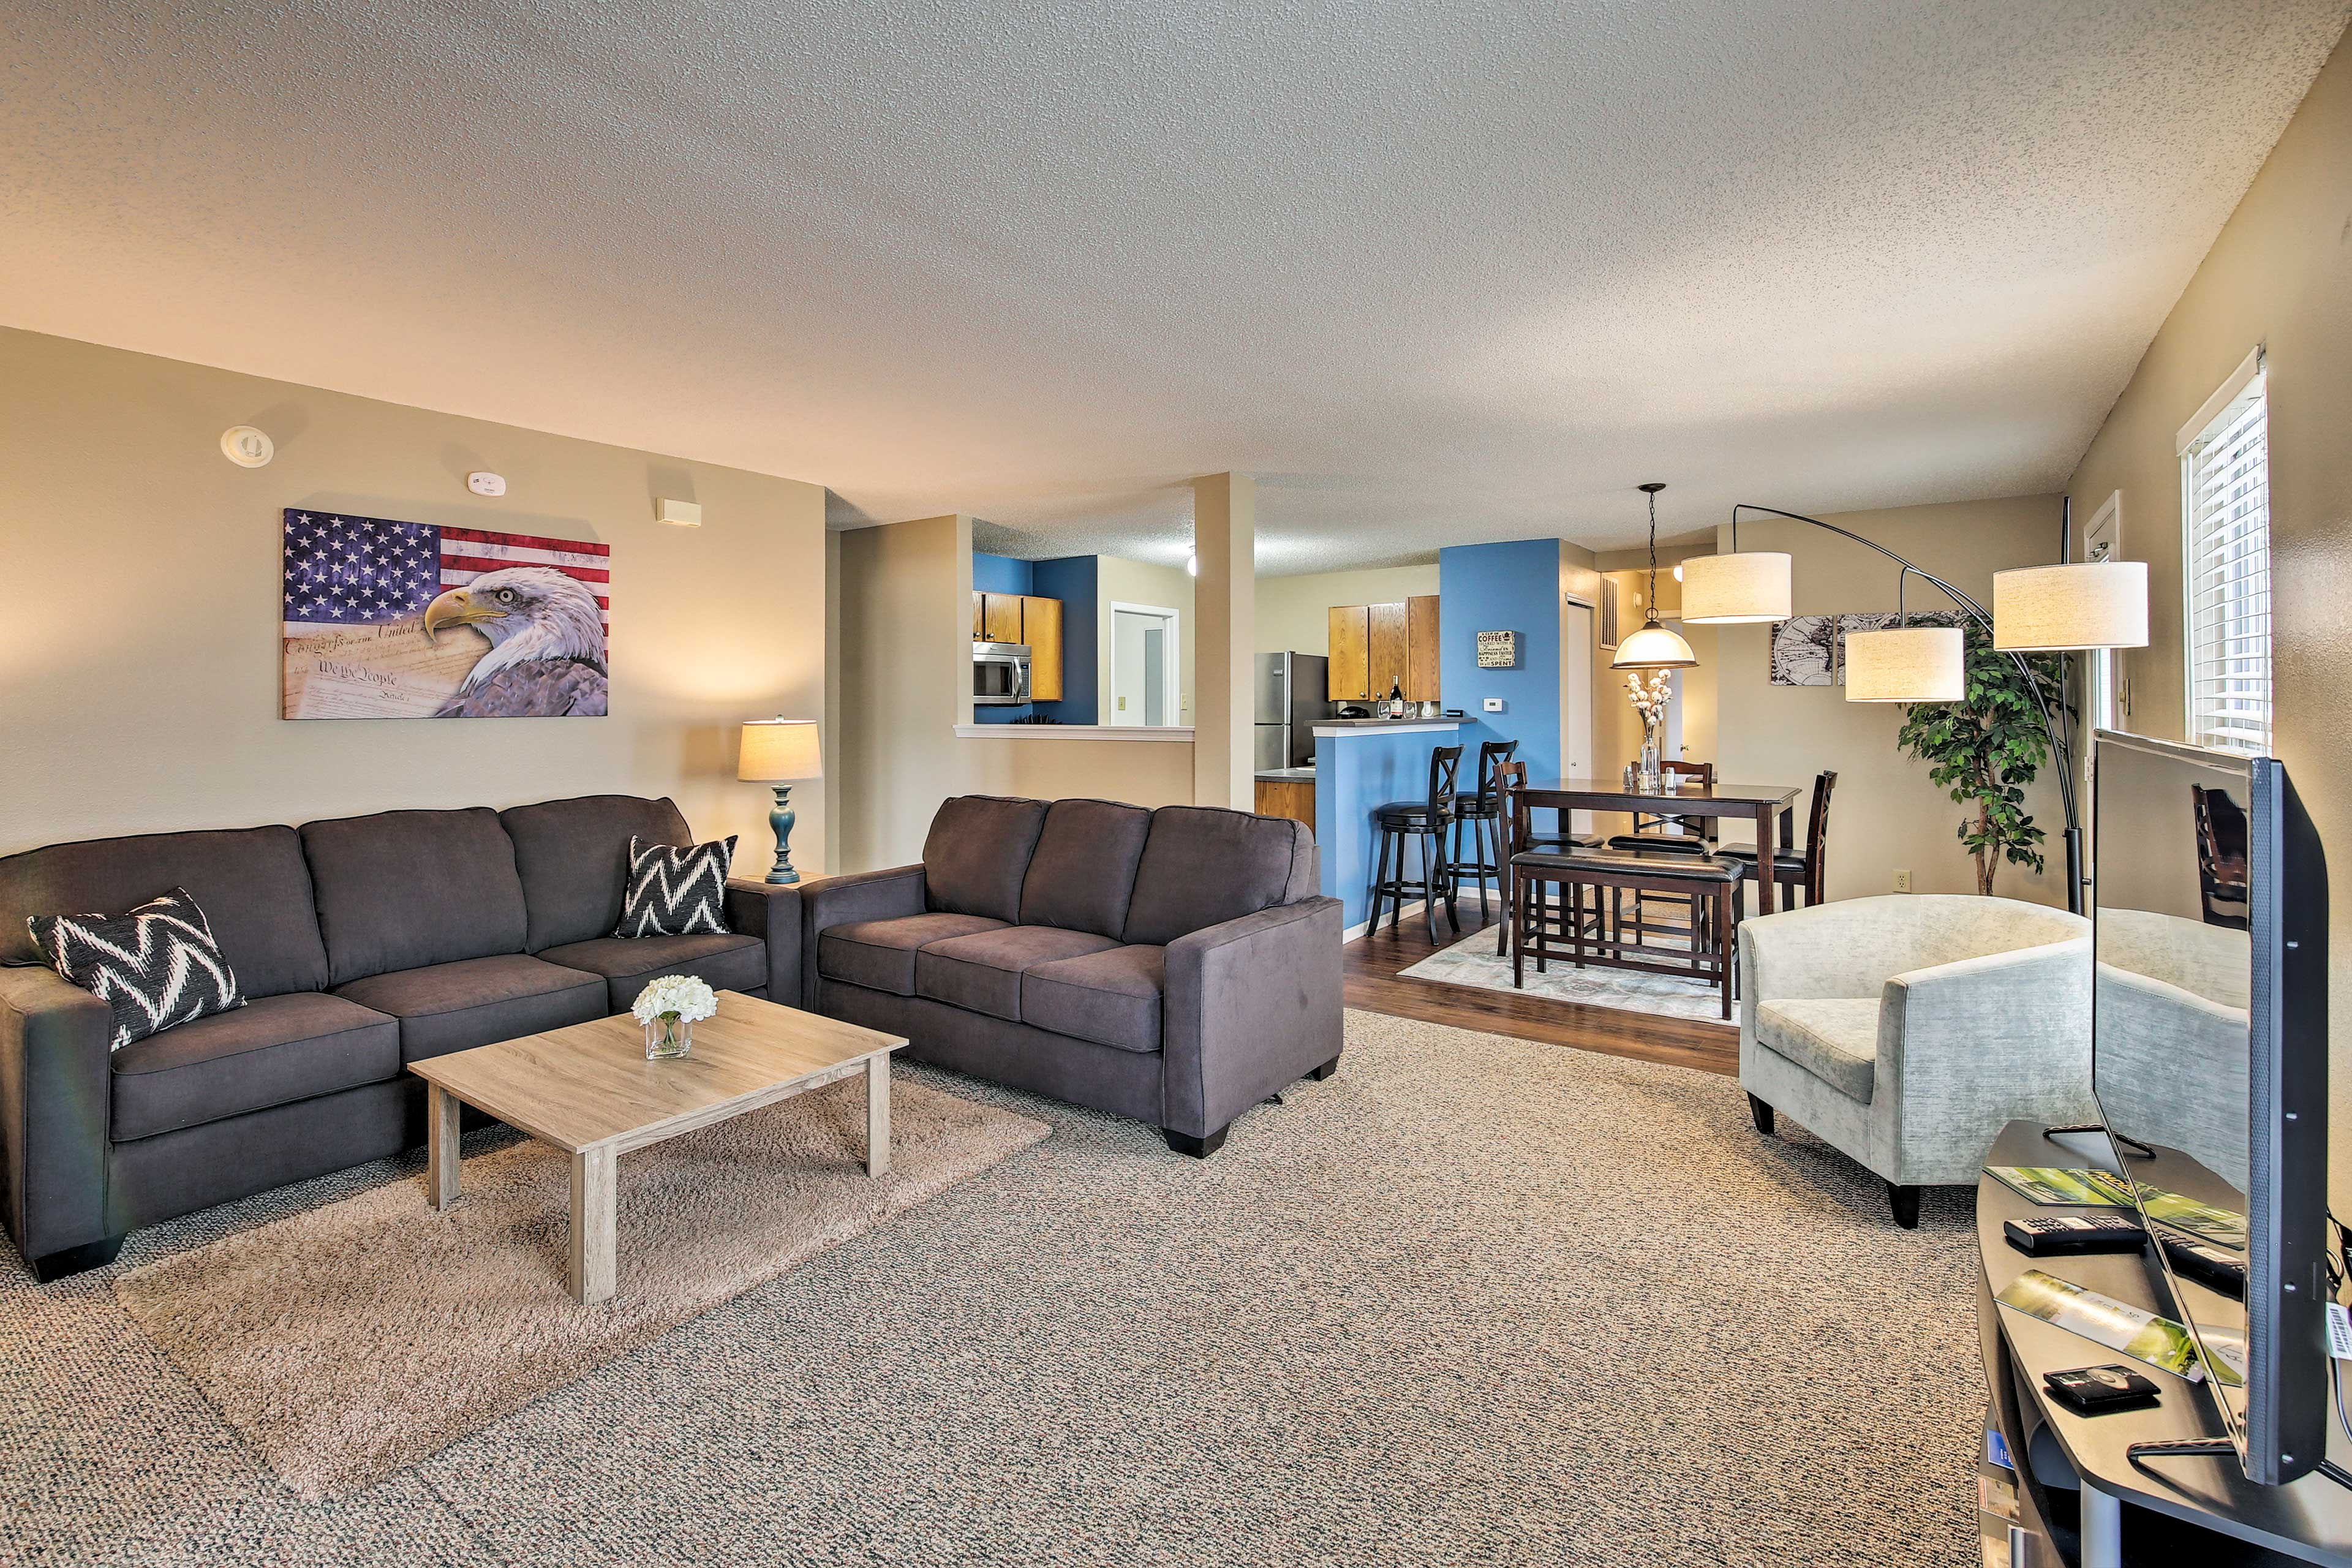 Find a home-away-from-home at this vacation rental in Lafayette!